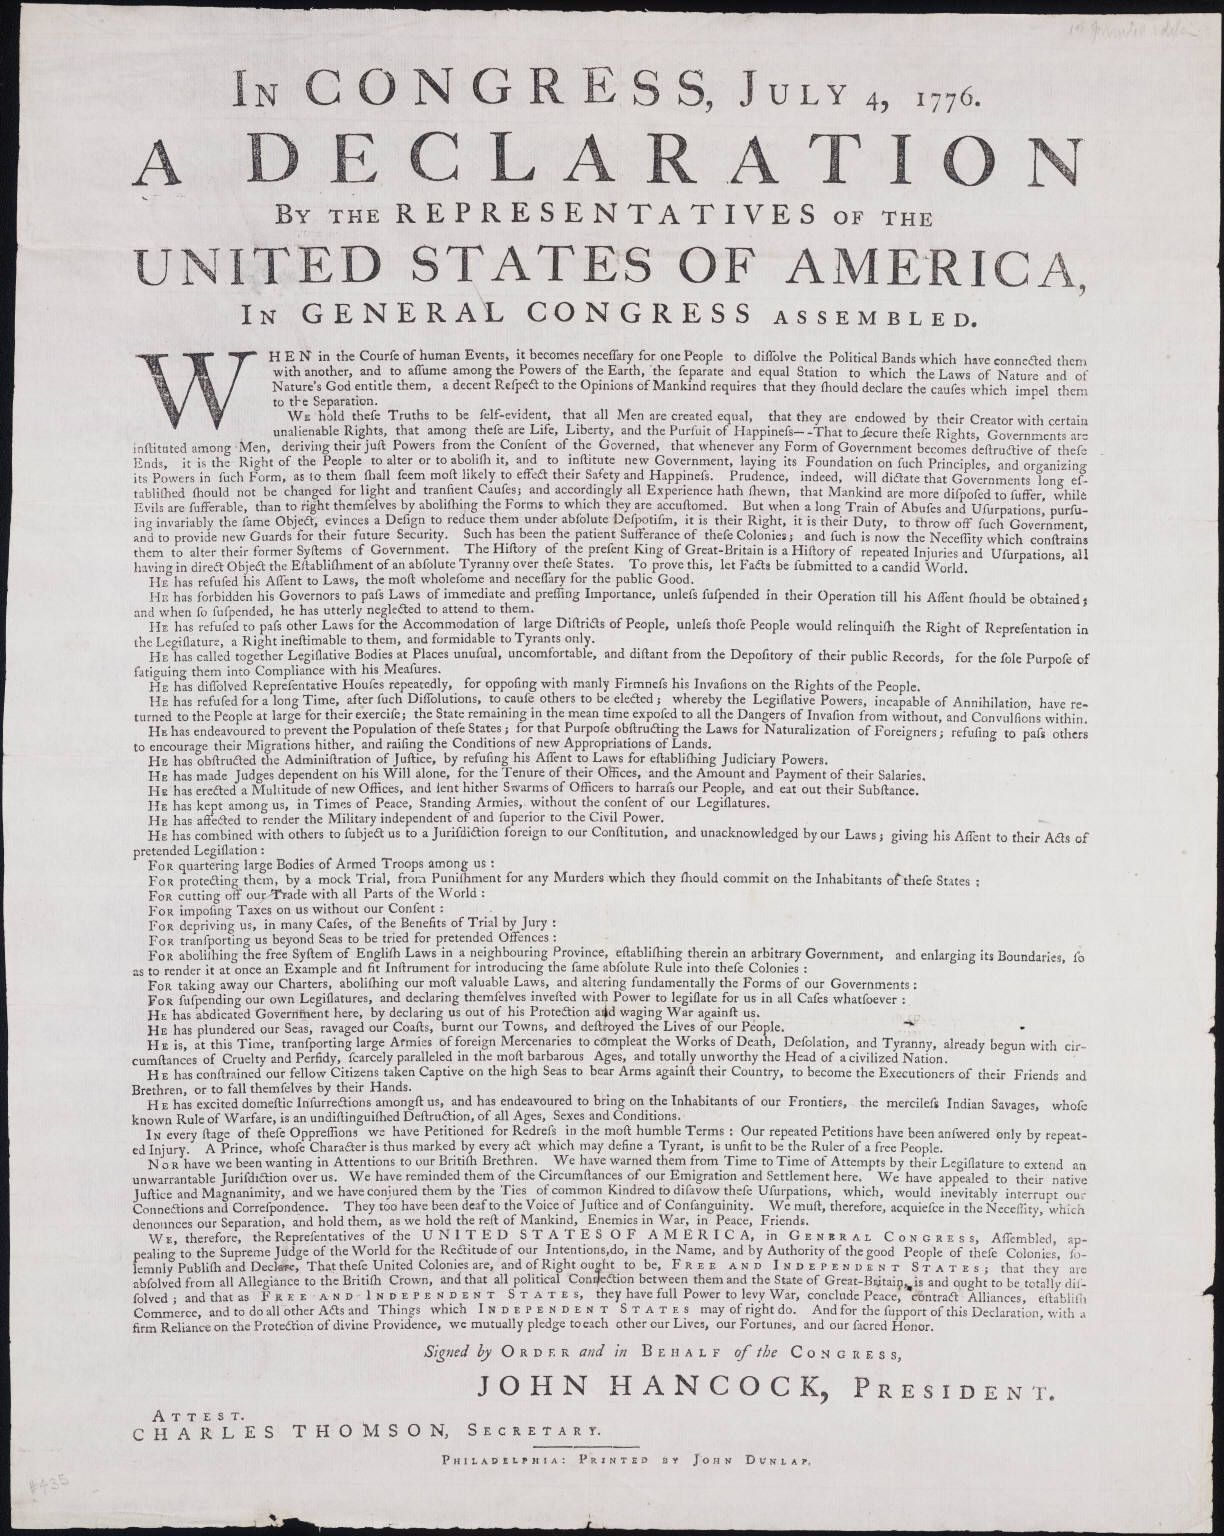 have americans lived up to the ideals expressed in the declaration of independence essays and term p The declaration of independence expresses the american dream ittalks about freedom, and the ability of a man, or a country, tomake his own way in the world.